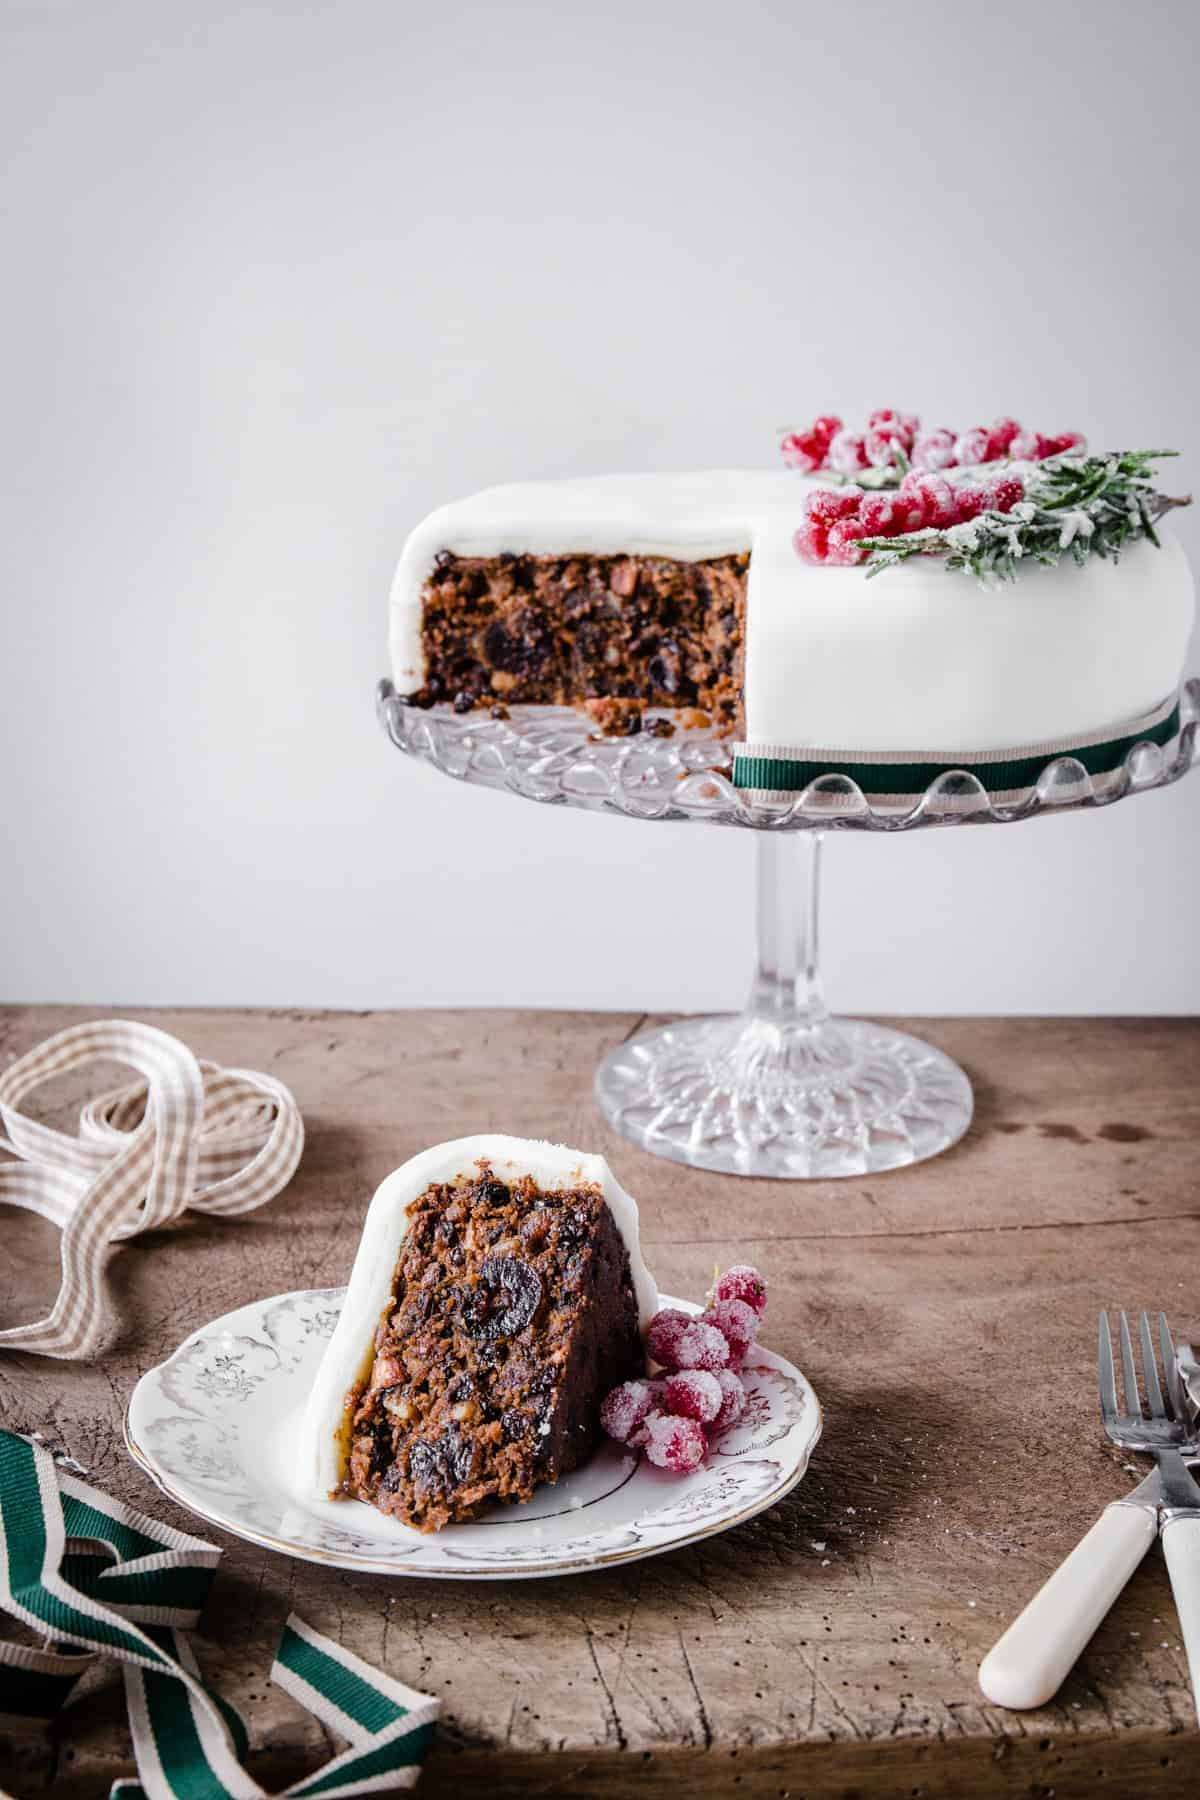 Slice of Christmas Cake on a plate in front of whole cake on a stand